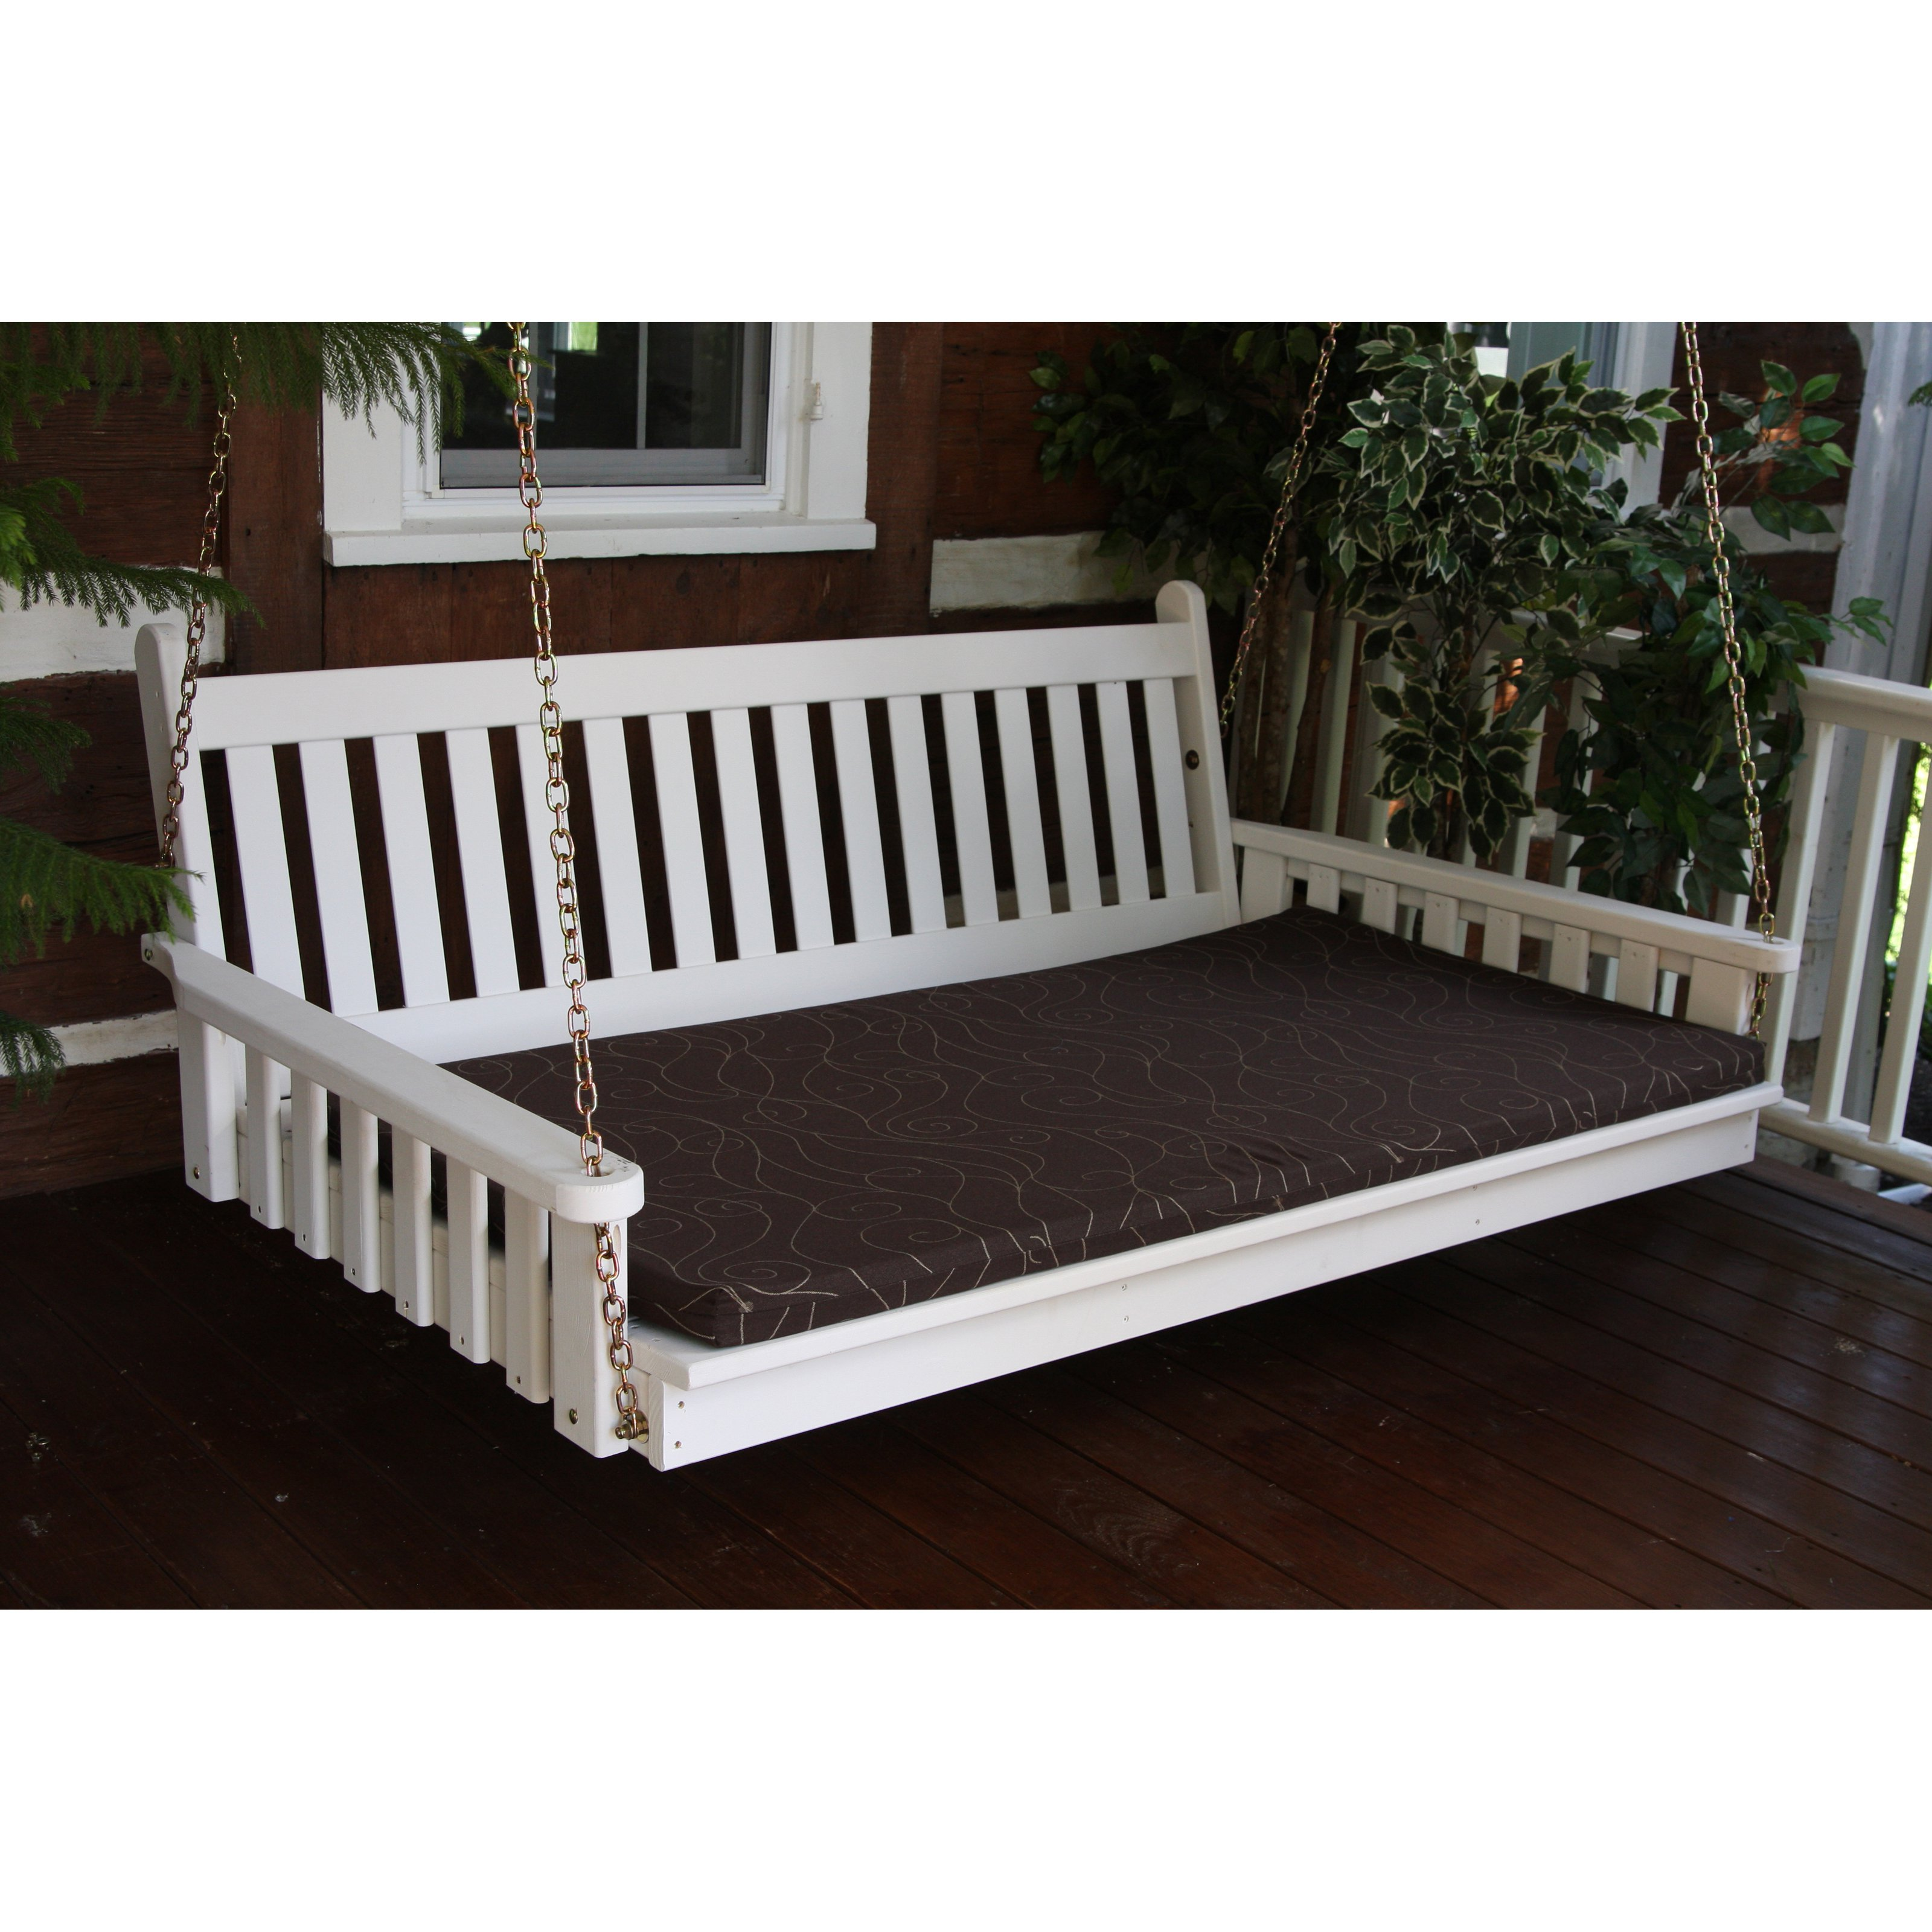 A & L Furniture Sundown Agora 5 ft. Swing Bed Cushion - 2 in. Thickness - 55W x 34D in.